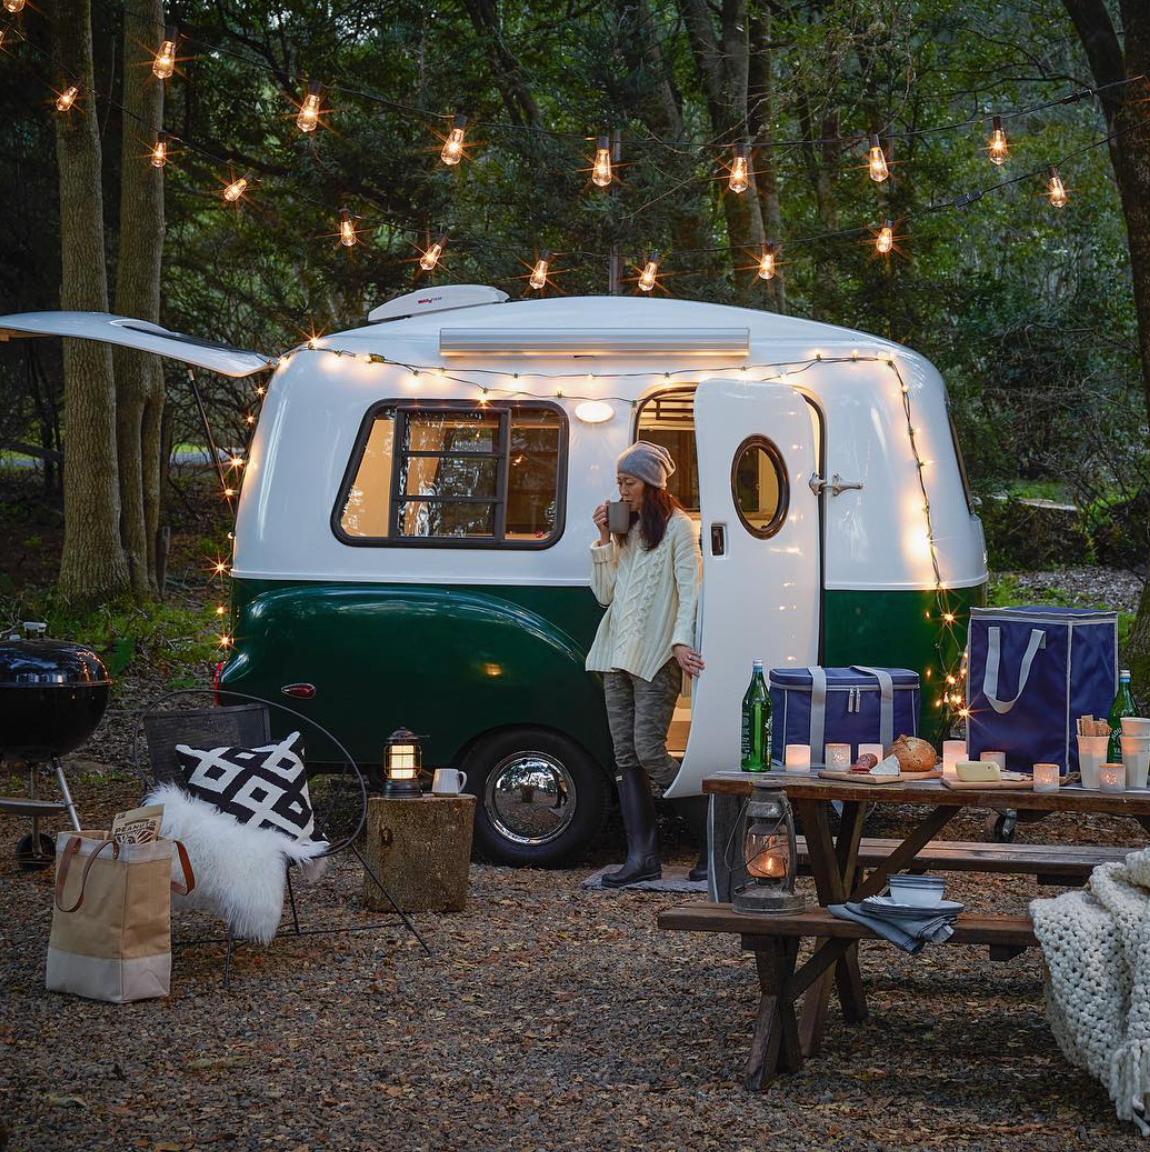 20 Best Small Campers And Travel Trailers For Road Trips Small